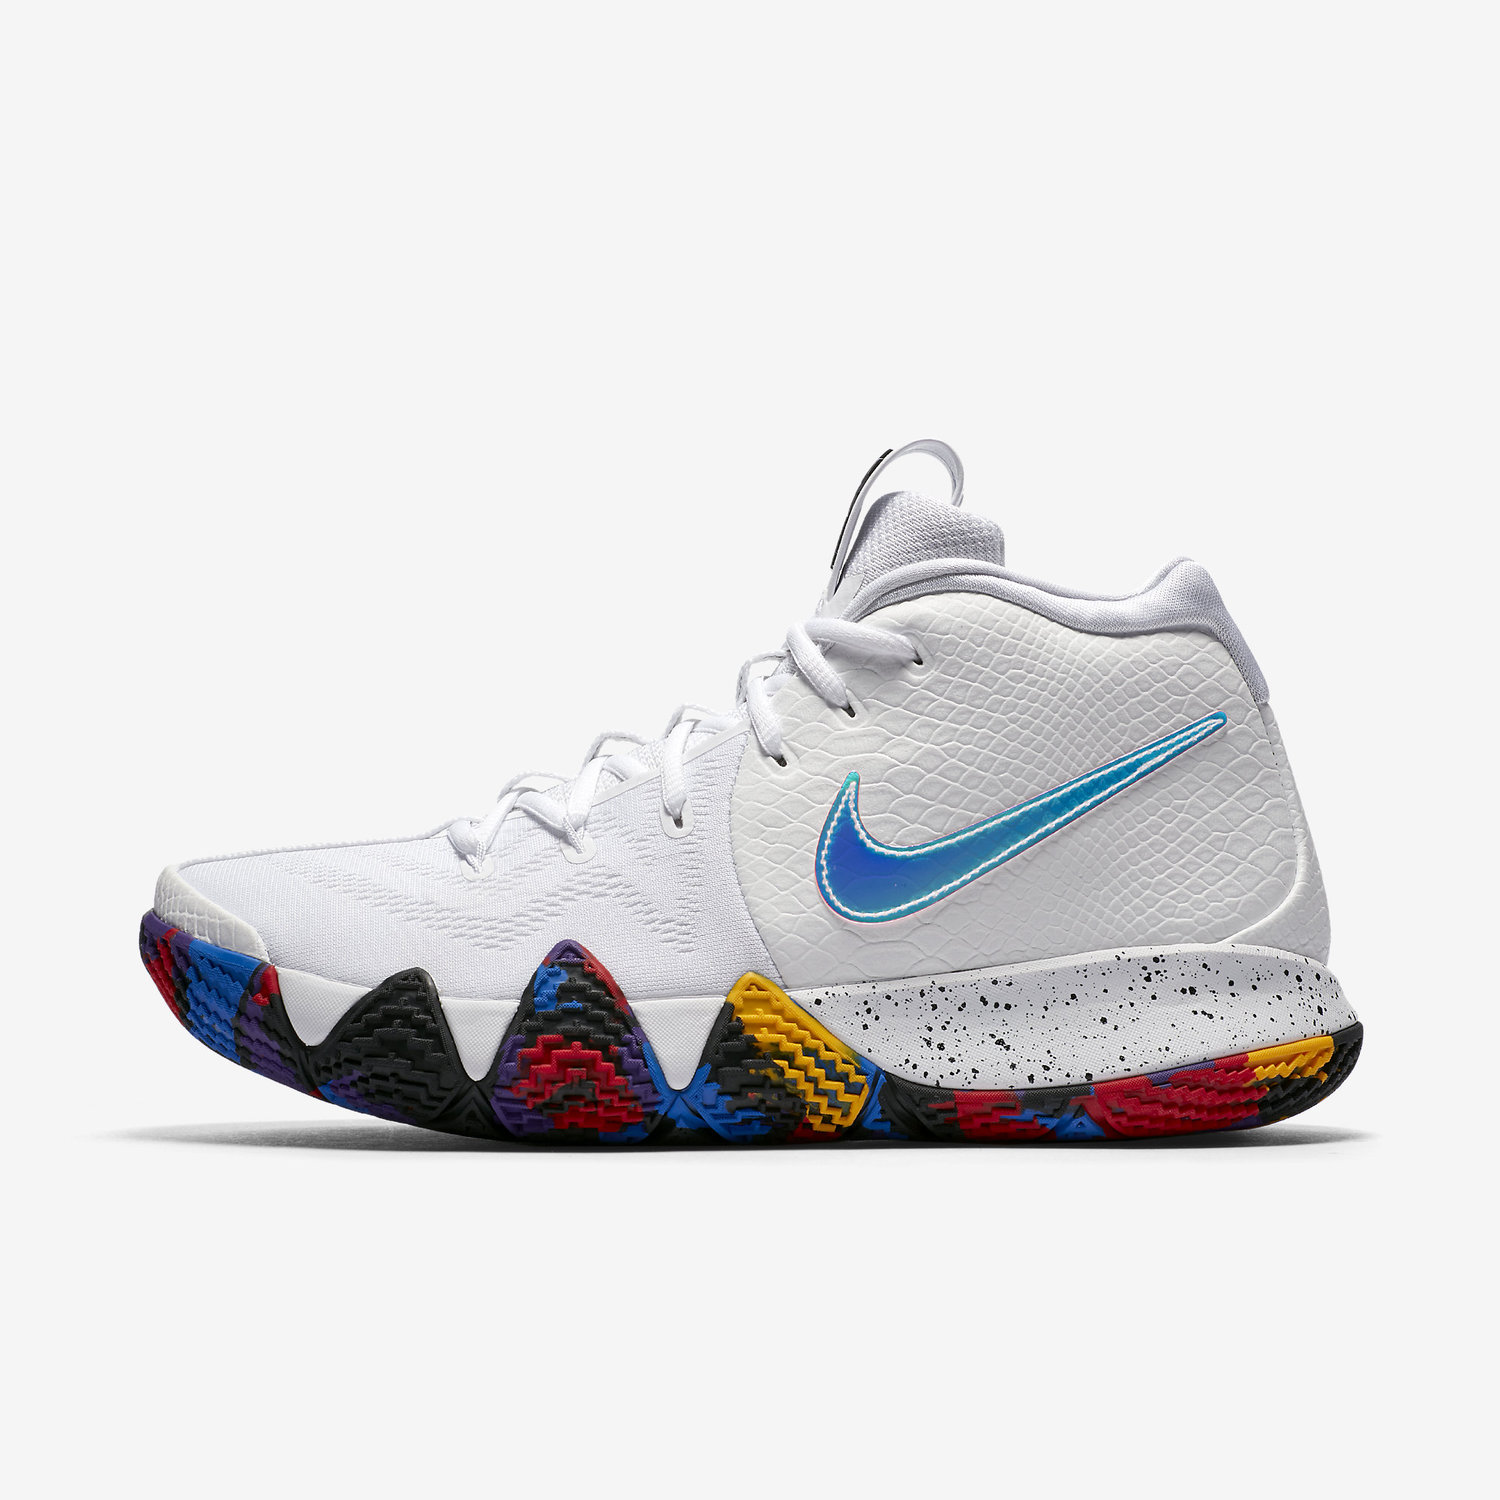 hombro Provisional Vegetales  Nike Kyrie Irving 4 Iridescent